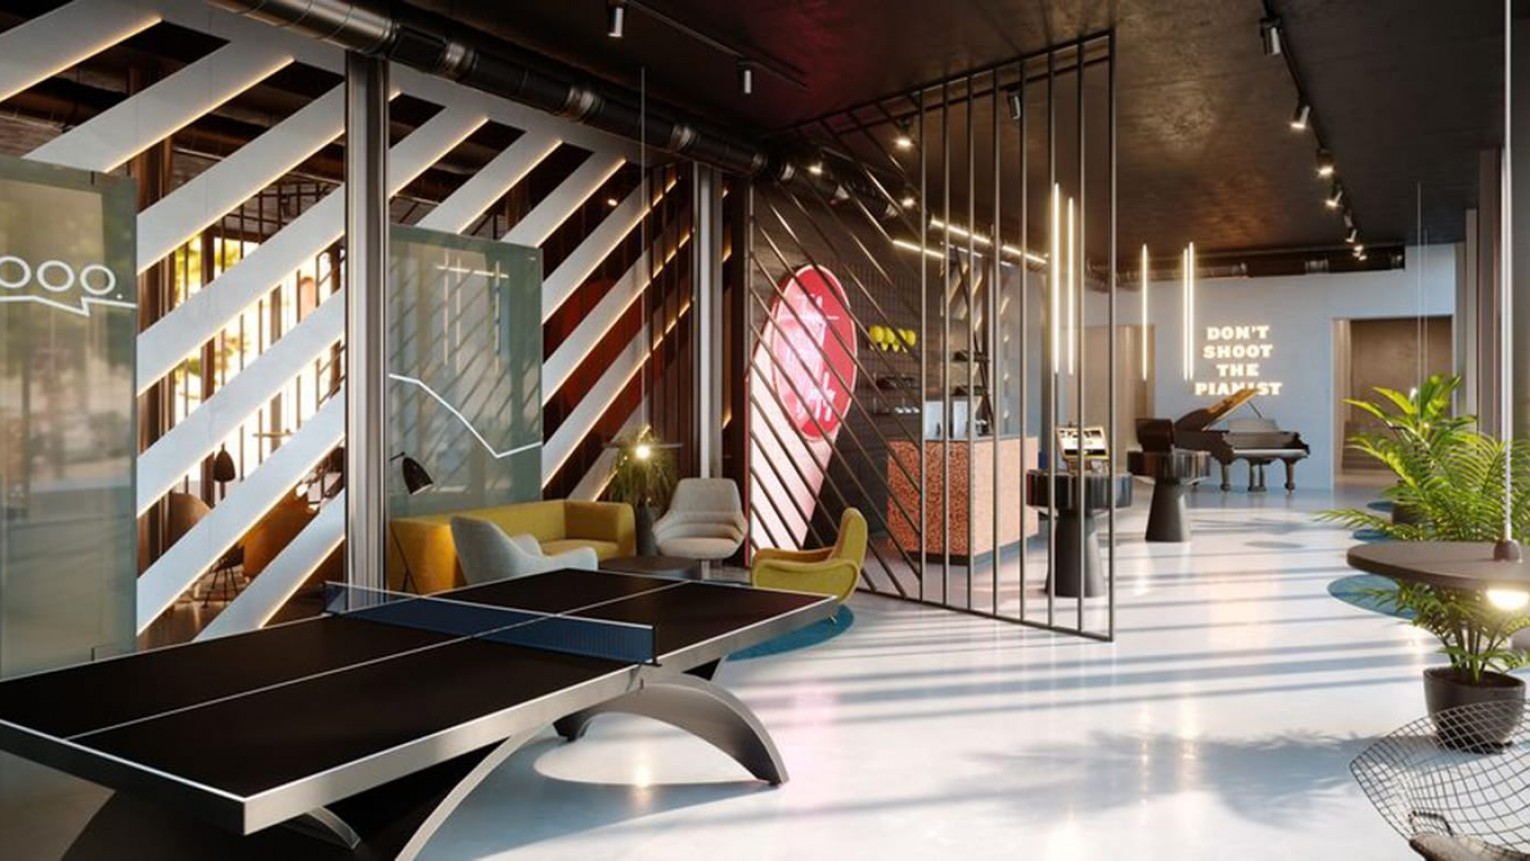 The Student Hotel Florence | MASSIVart - Art Curator Services